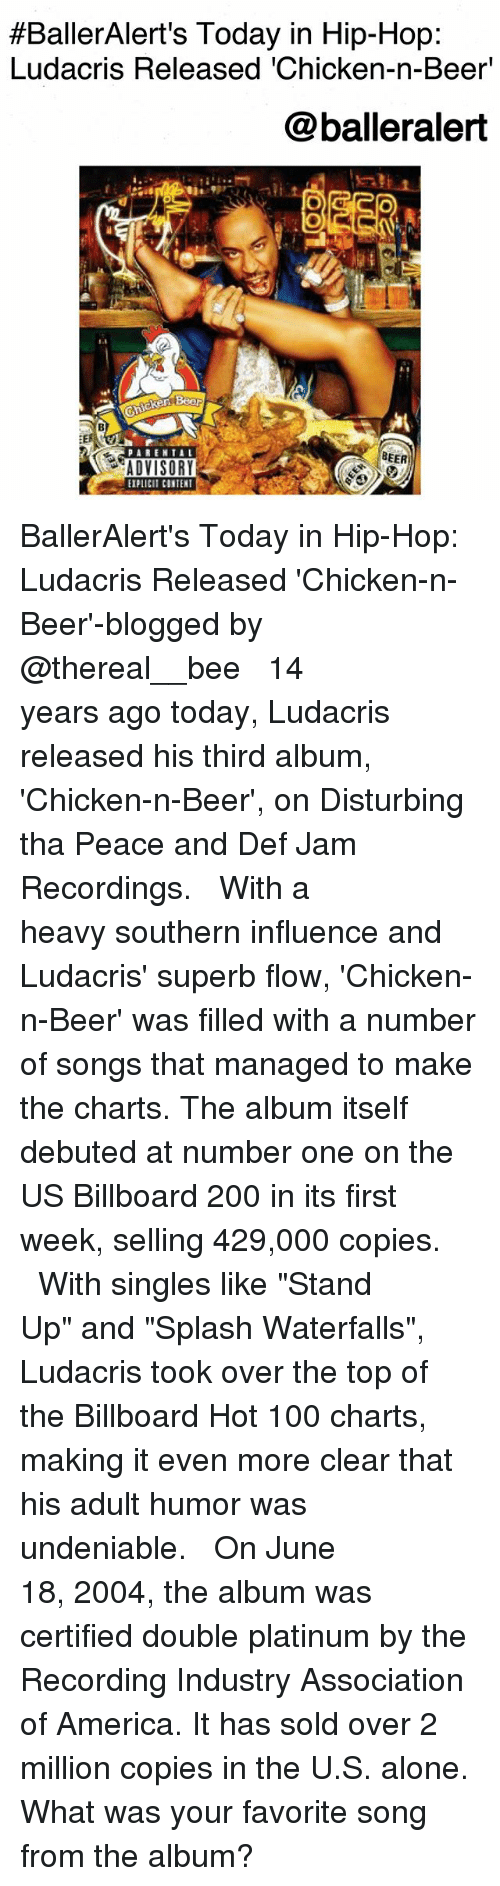 """billboard hot 100:  #BallerAlert's Today in Hip-Hop:  Ludacris Released 'Chicken-n-Beer'  @balleralert  BEER  ADVISORY  EIPLICIT CONTENT BallerAlert's Today in Hip-Hop: Ludacris Released 'Chicken-n-Beer'-blogged by @thereal__bee ⠀⠀⠀⠀⠀⠀⠀⠀⠀ ⠀⠀ 14 years ago today, Ludacris released his third album, 'Chicken-n-Beer', on Disturbing tha Peace and Def Jam Recordings. ⠀⠀⠀⠀⠀⠀⠀⠀⠀ ⠀⠀ With a heavy southern influence and Ludacris' superb flow, 'Chicken-n-Beer' was filled with a number of songs that managed to make the charts. The album itself debuted at number one on the US Billboard 200 in its first week, selling 429,000 copies. ⠀⠀⠀⠀⠀⠀⠀⠀⠀ ⠀⠀ With singles like """"Stand Up"""" and """"Splash Waterfalls"""", Ludacris took over the top of the Billboard Hot 100 charts, making it even more clear that his adult humor was undeniable. ⠀⠀⠀⠀⠀⠀⠀⠀⠀ ⠀⠀ On June 18, 2004, the album was certified double platinum by the Recording Industry Association of America. It has sold over 2 million copies in the U.S. alone. What was your favorite song from the album?"""